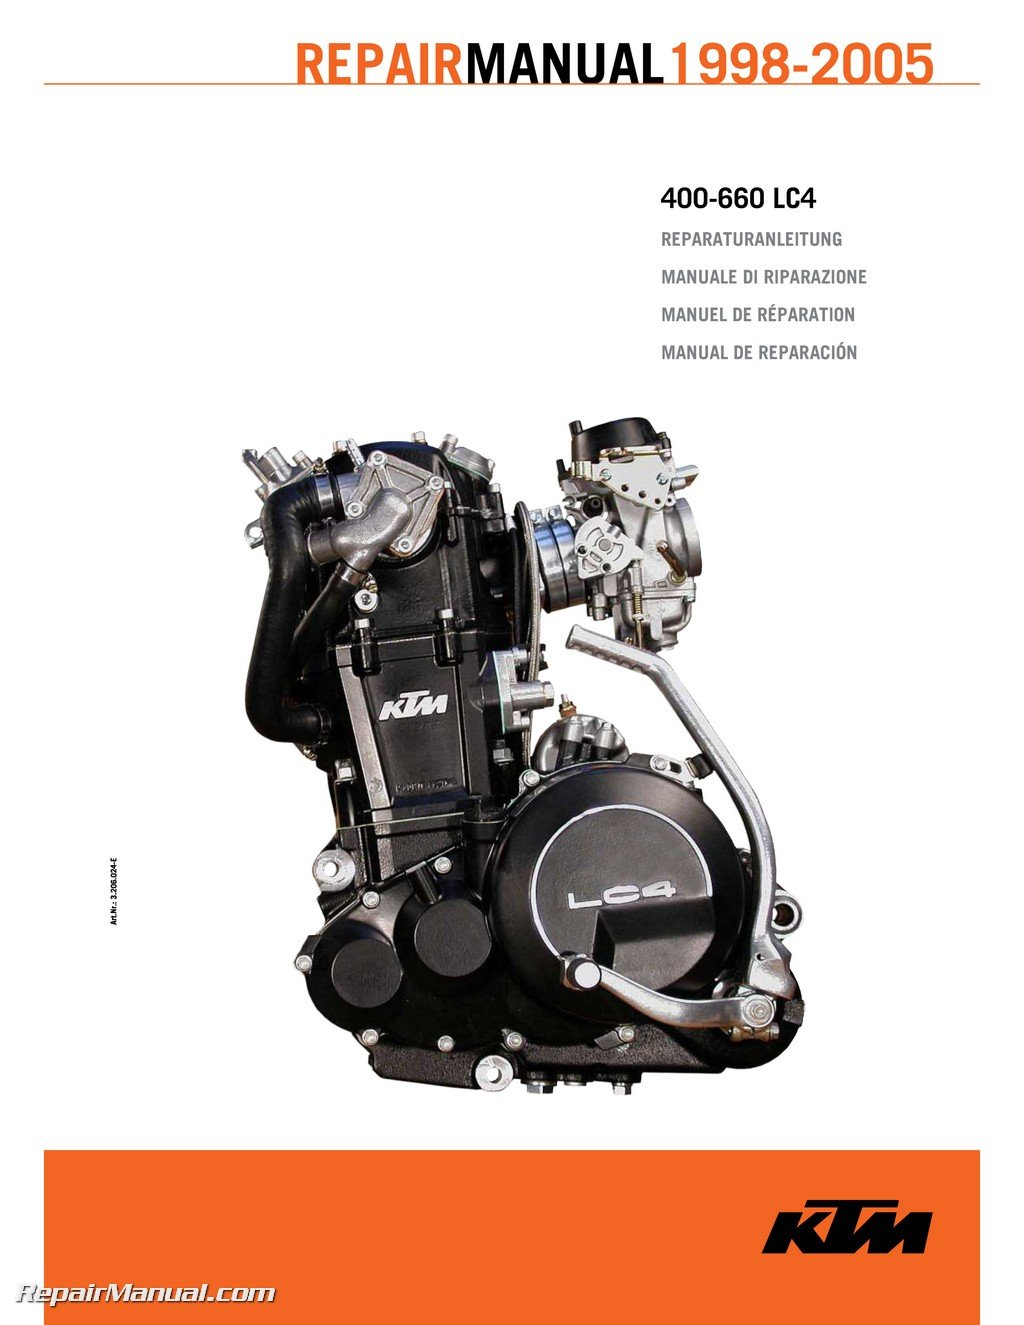 3206024-E 1998-2005 KTM 400-660 LC4 Paper Engine Repair Manual:  Manufacturer: Amazon.com: Books